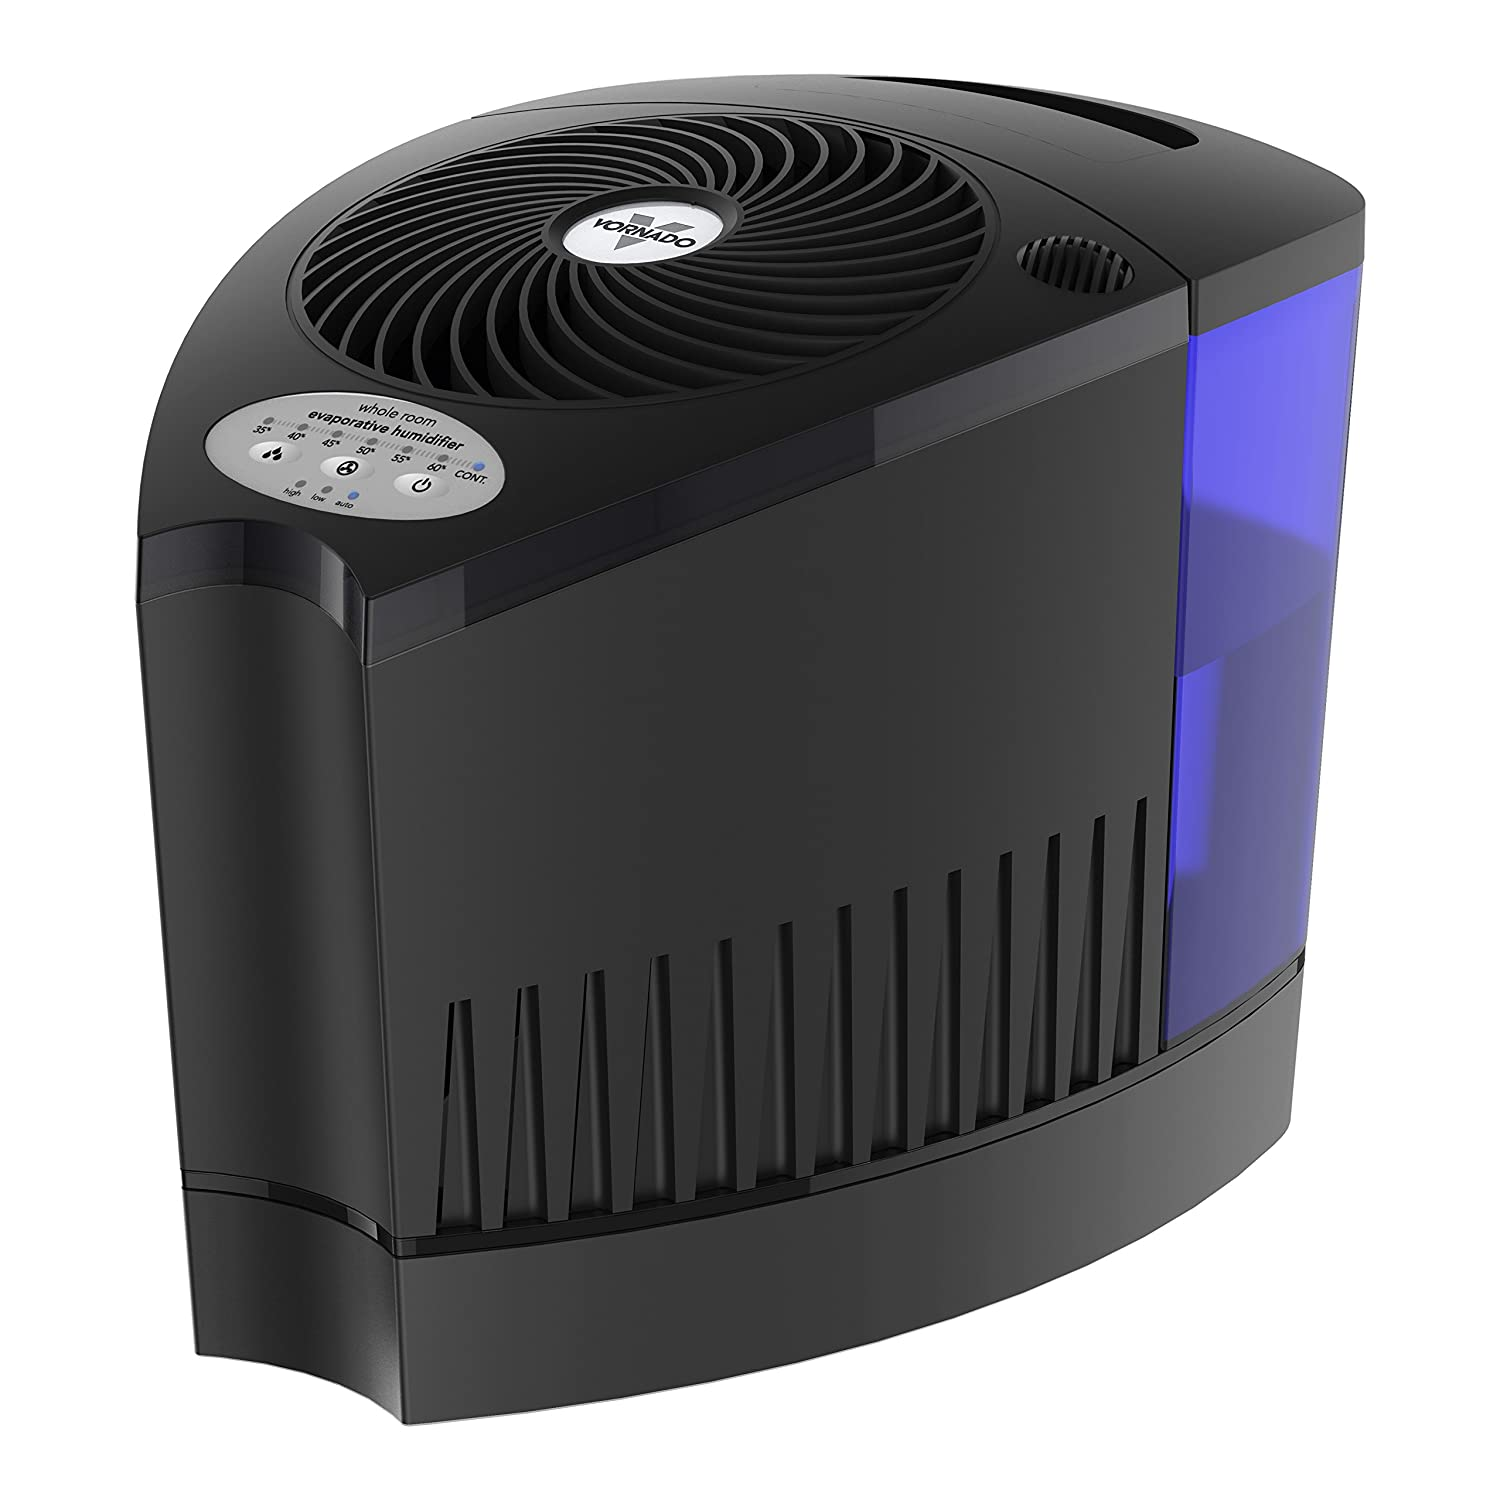 Small Humidifiers Bedroom The Best Air Purifiers Humidifiers Reviews Comparisons Of Top